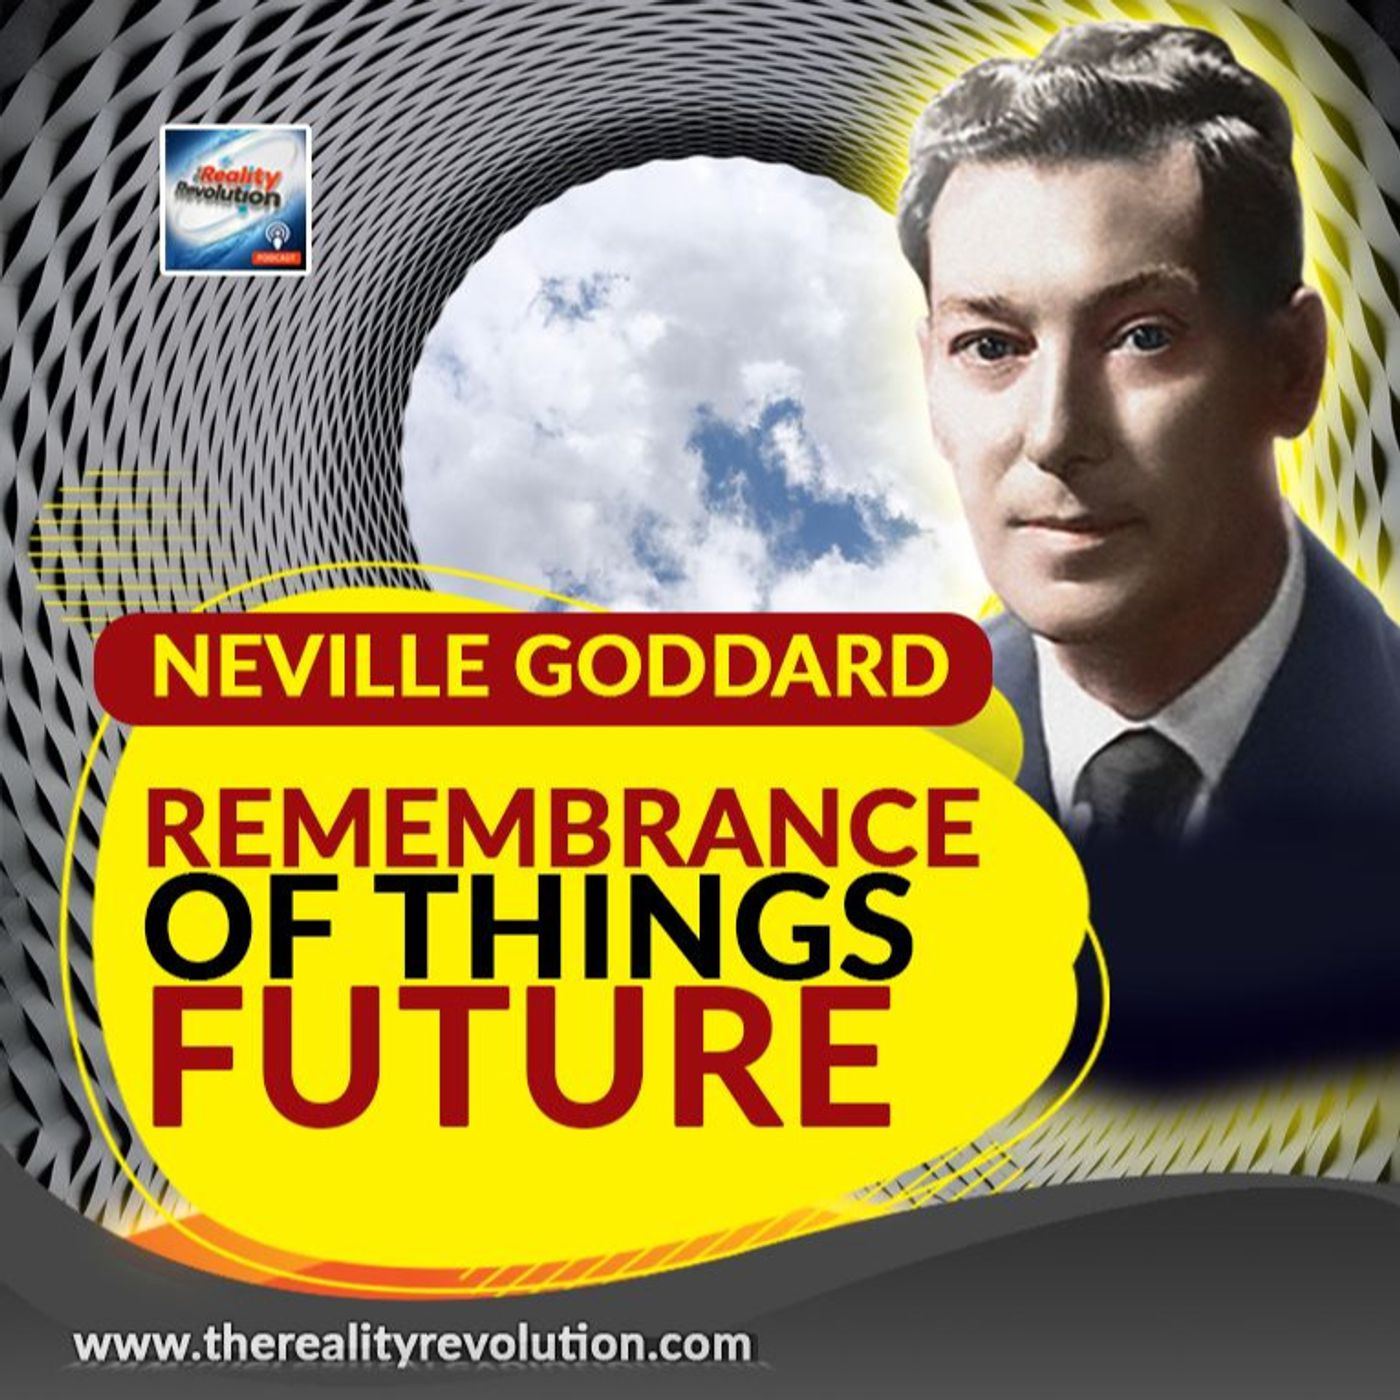 Neville Goddard - Remembrance Of Things Future